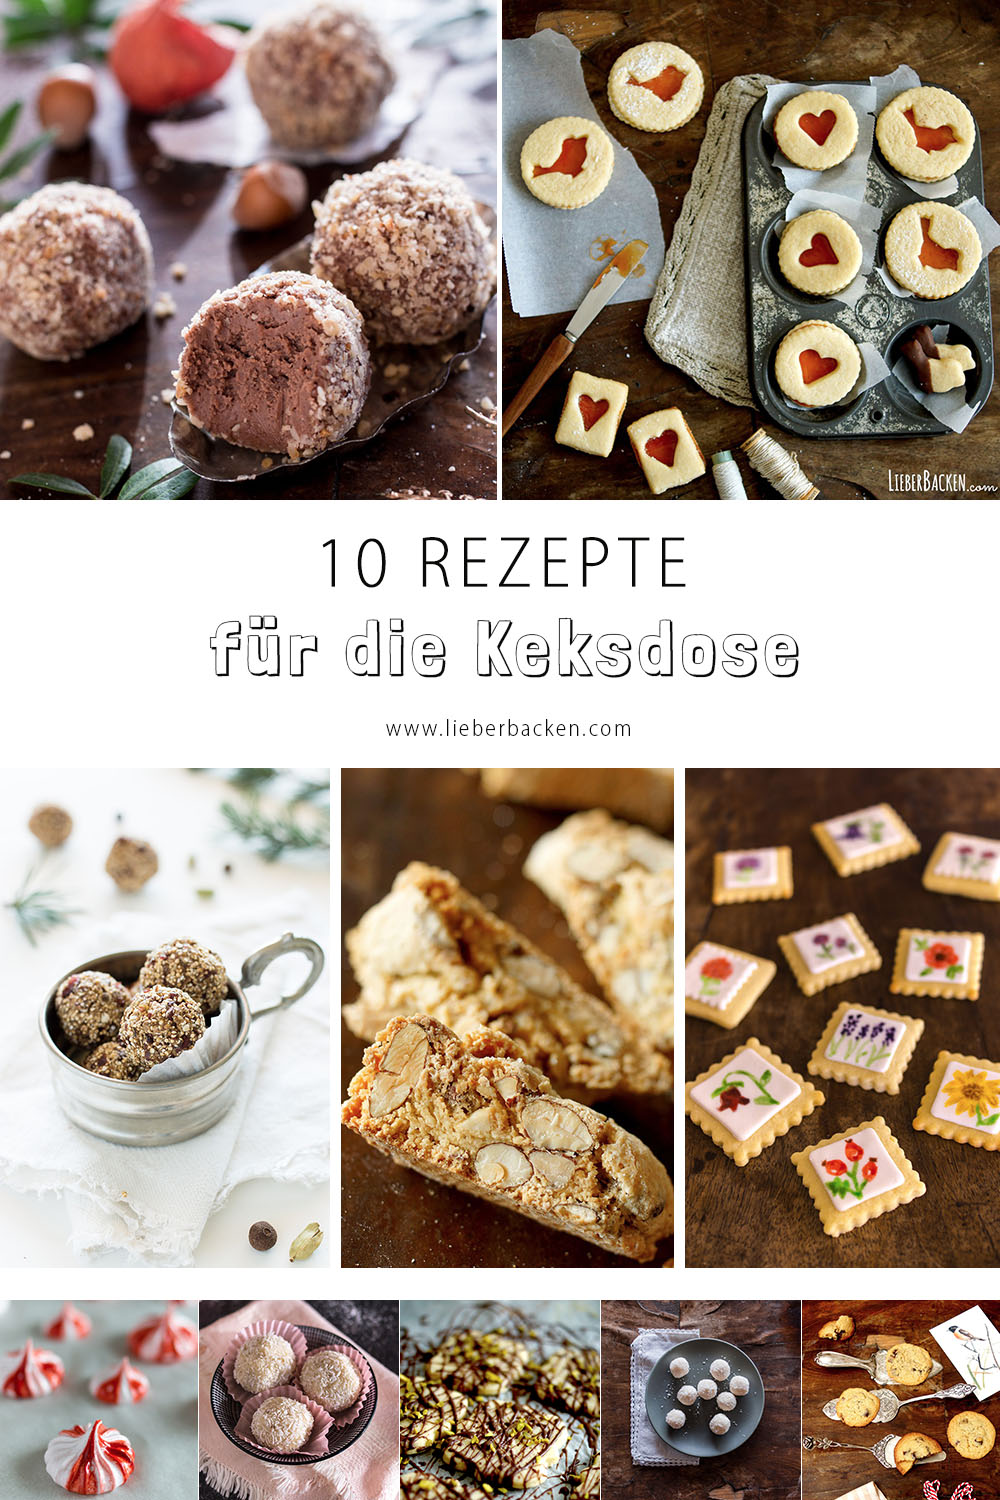 10 Rezepte für die Keksdose - Weihnachten kann kommen!